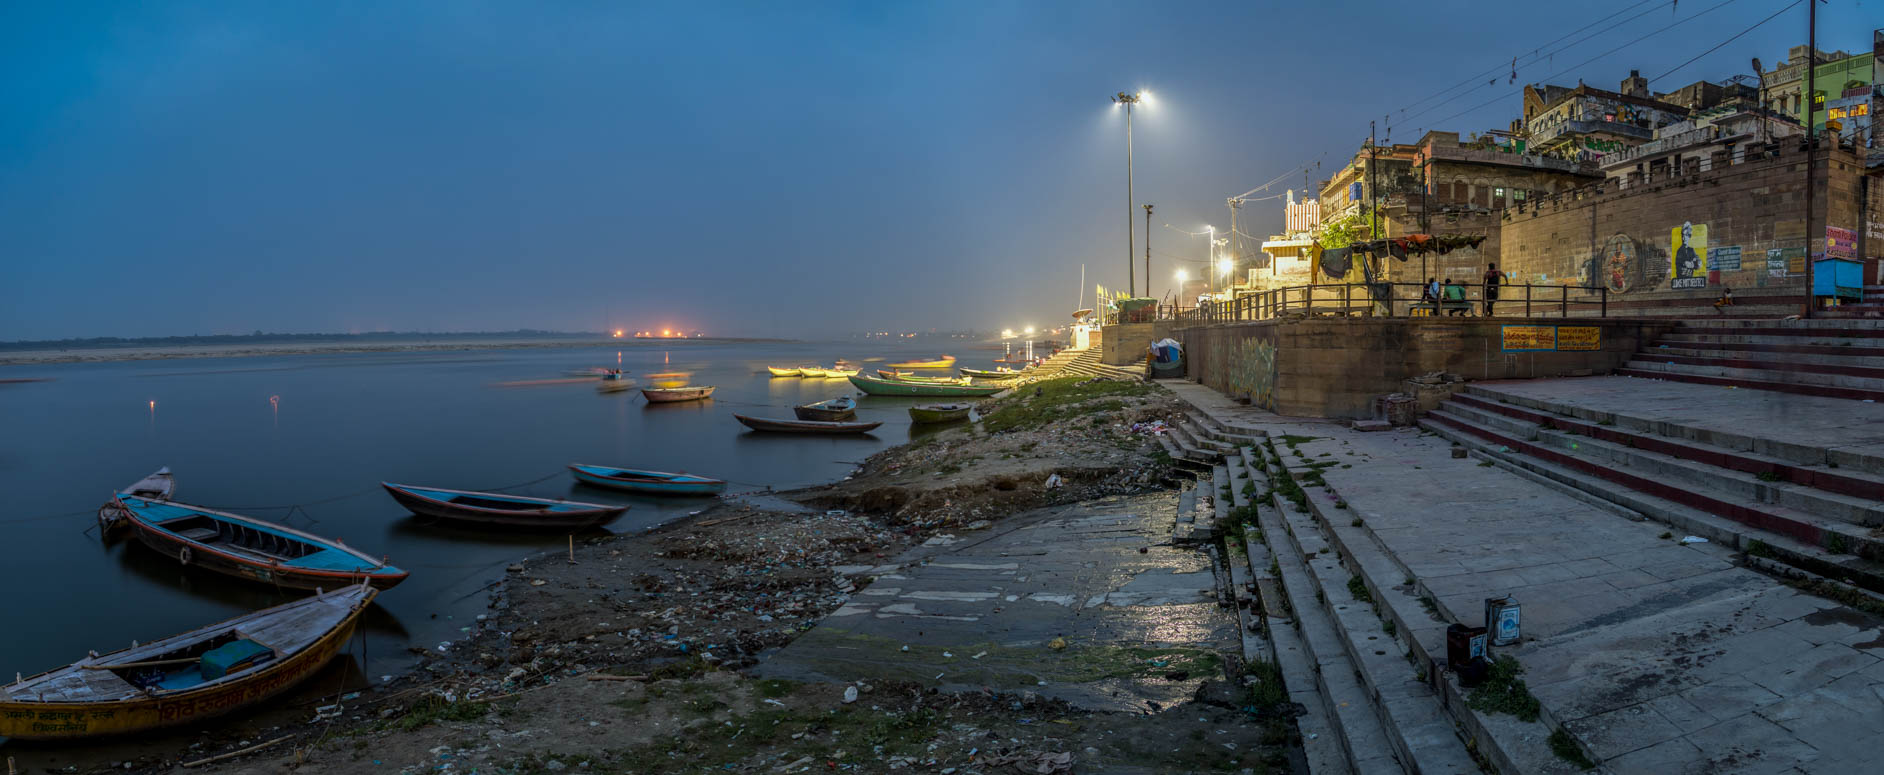 Nighttime at the Ghats